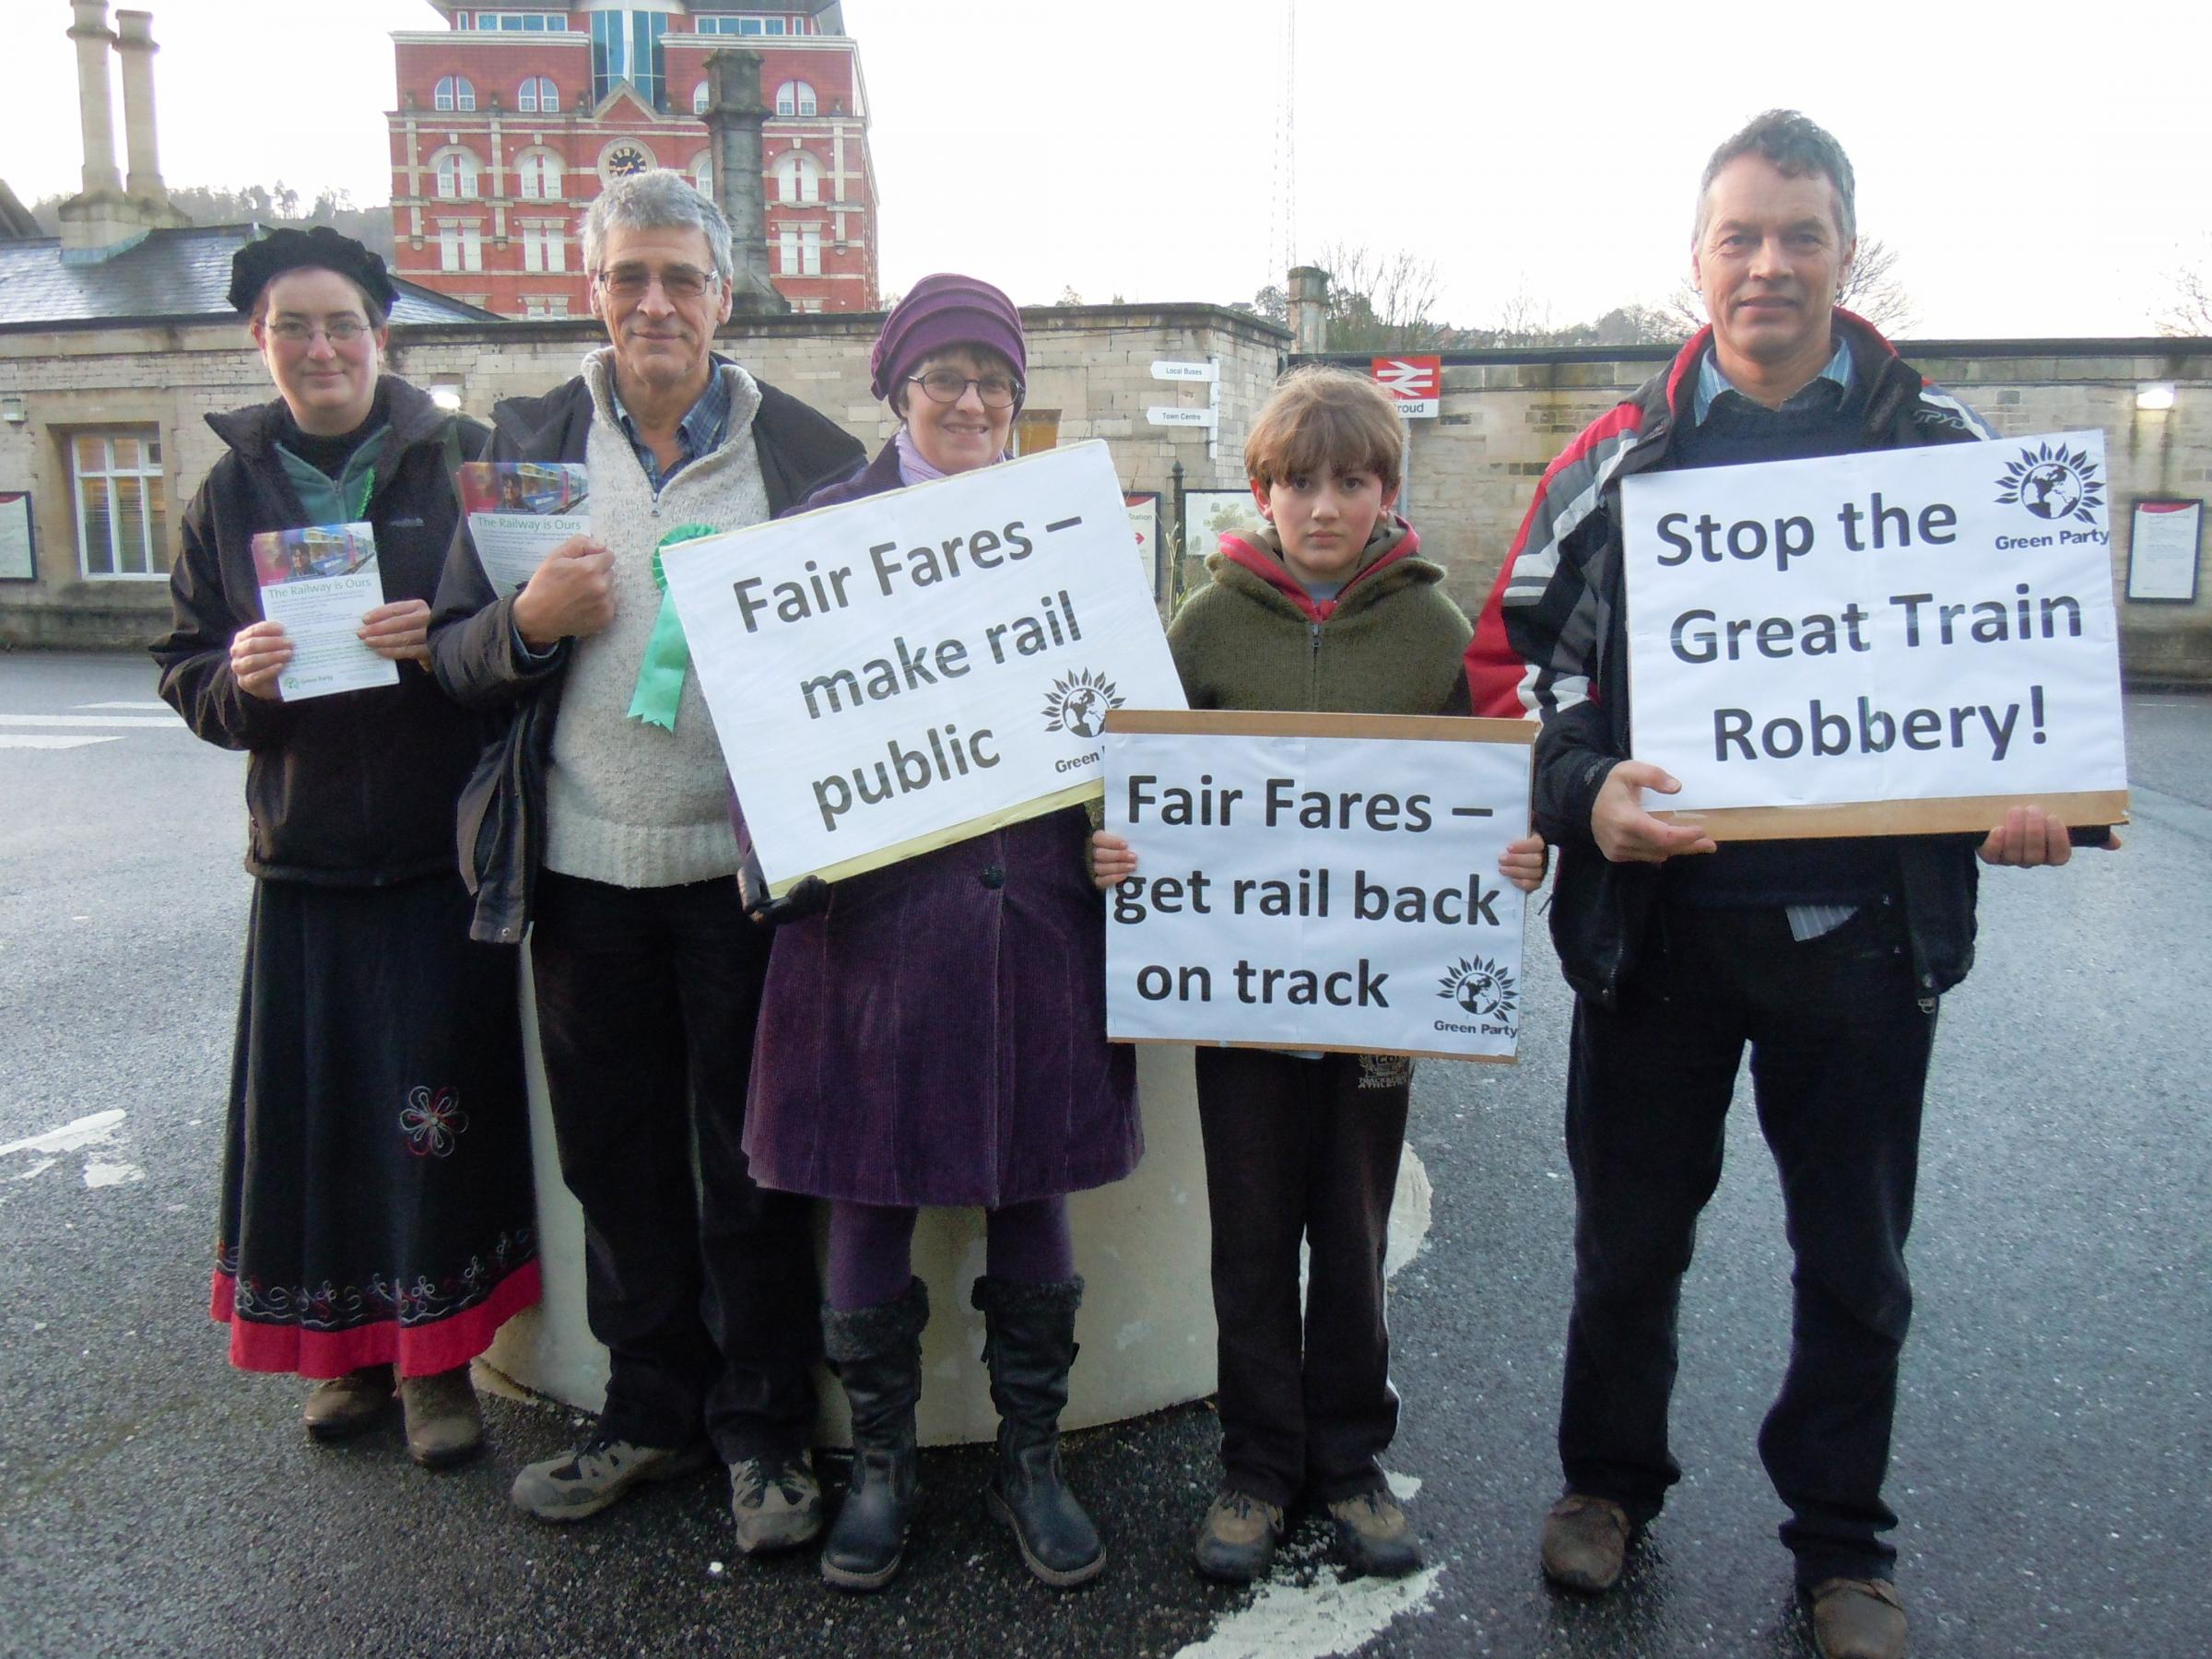 Stroud Green Party calls for Britain's railways to be re-nationalised